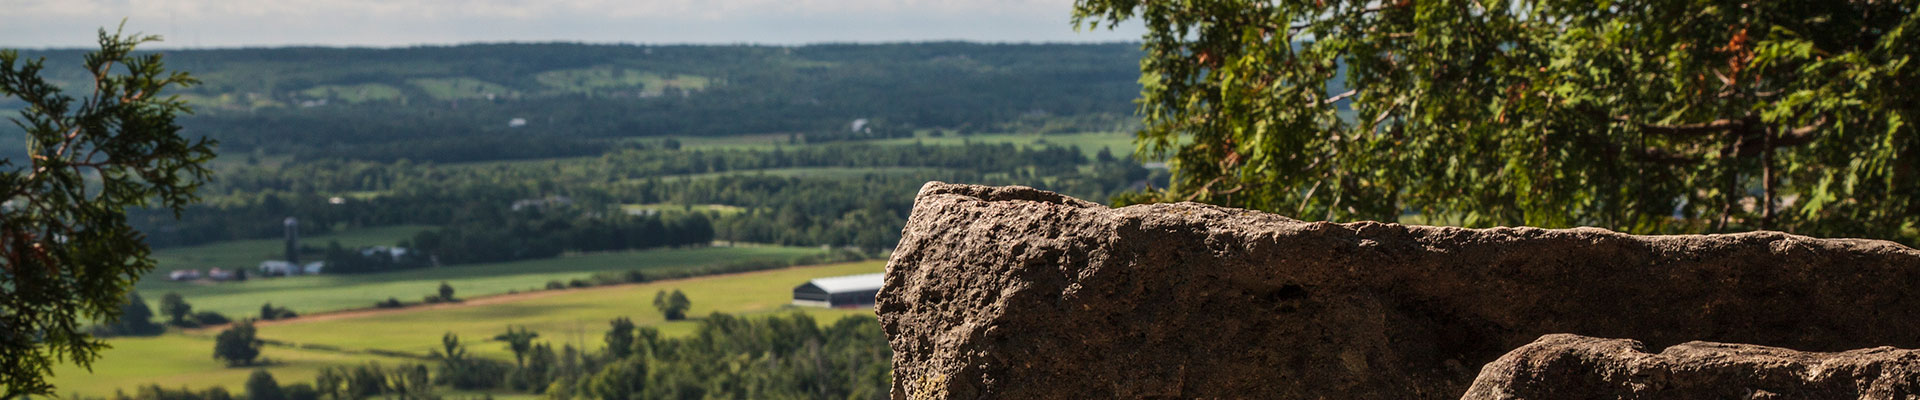 Photo-View-Cliff-2014-08-13-Rattlesnake-Point-Conservation-Area-009.jpg